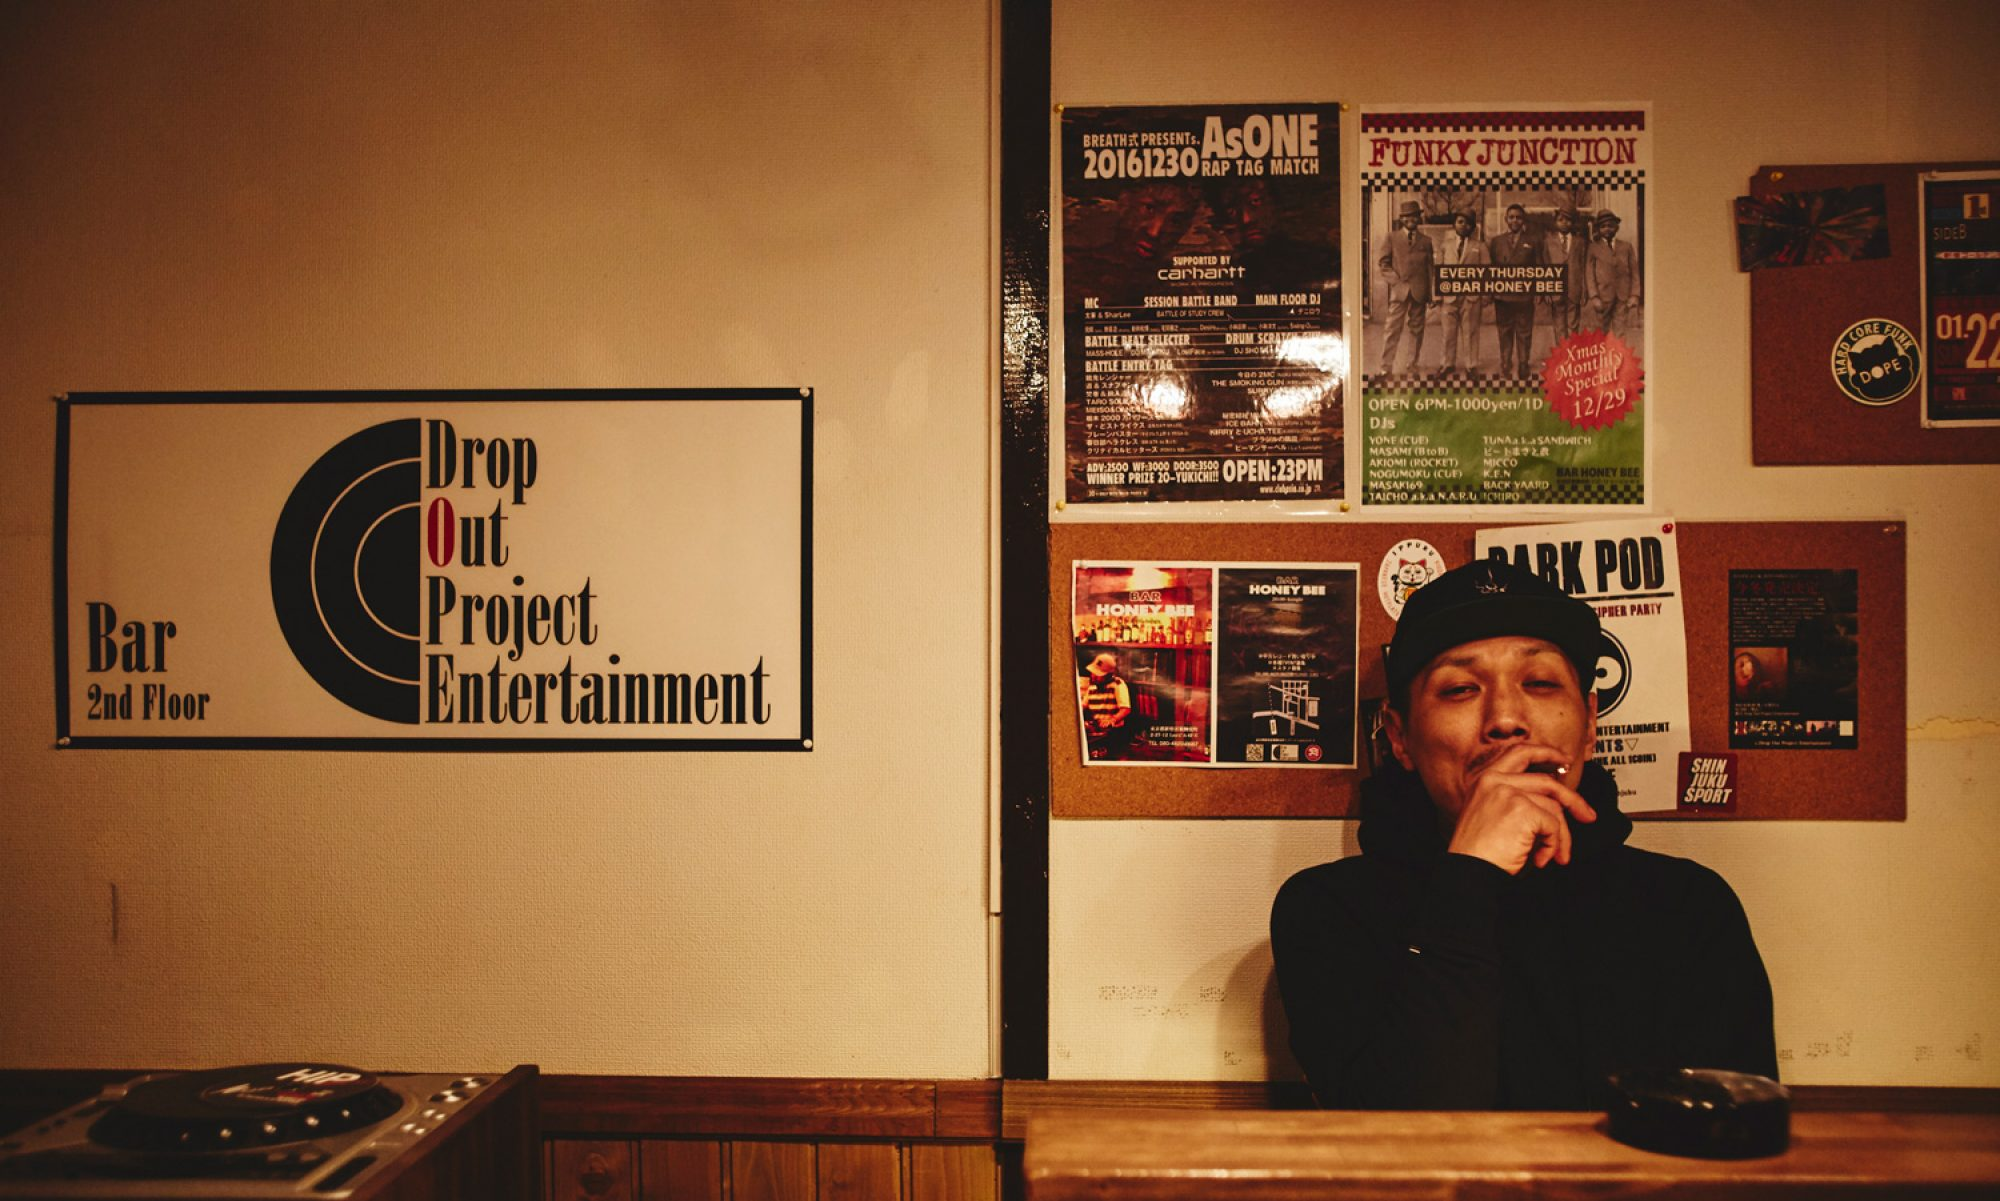 D.O.P.E(Drop Out Project Entertainment)新宿 | 鬼